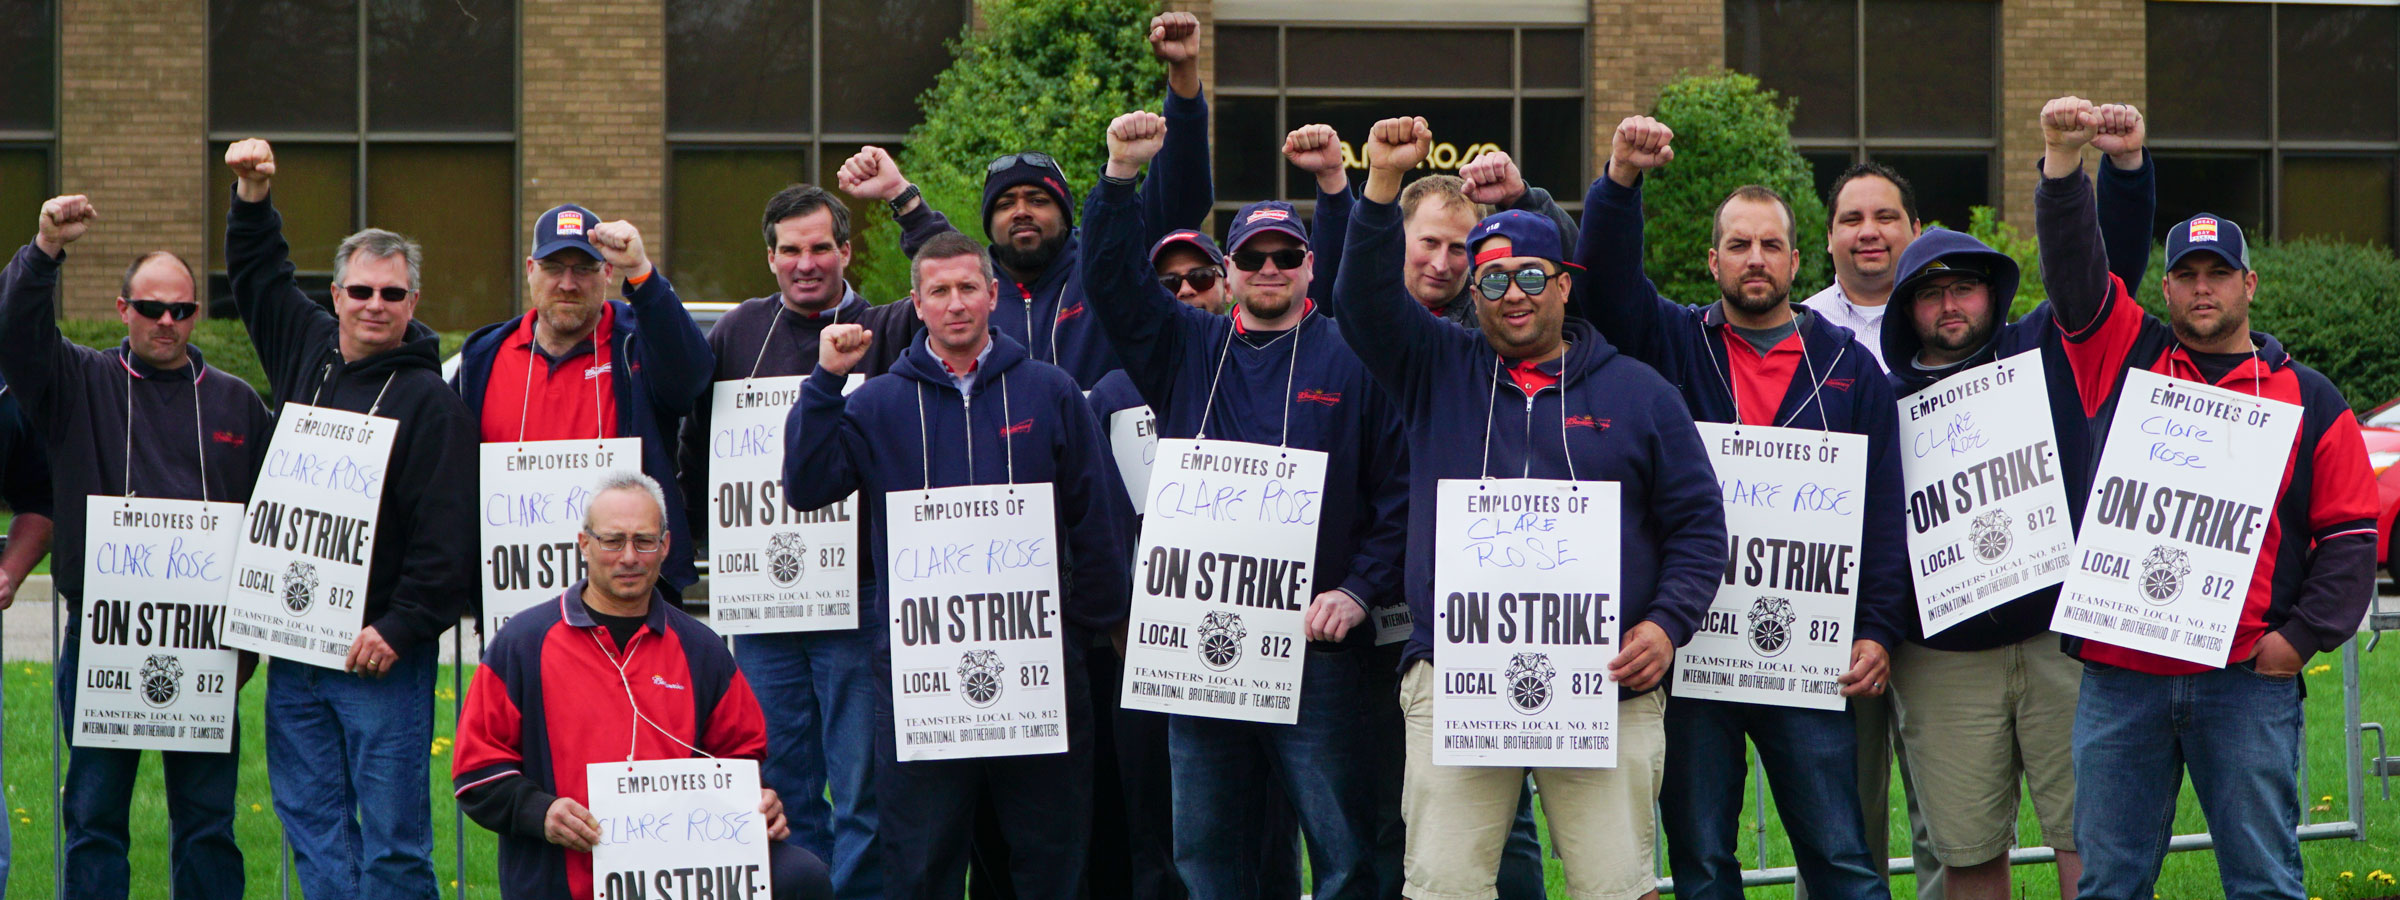 Teamsters Win Clare Rose Strike